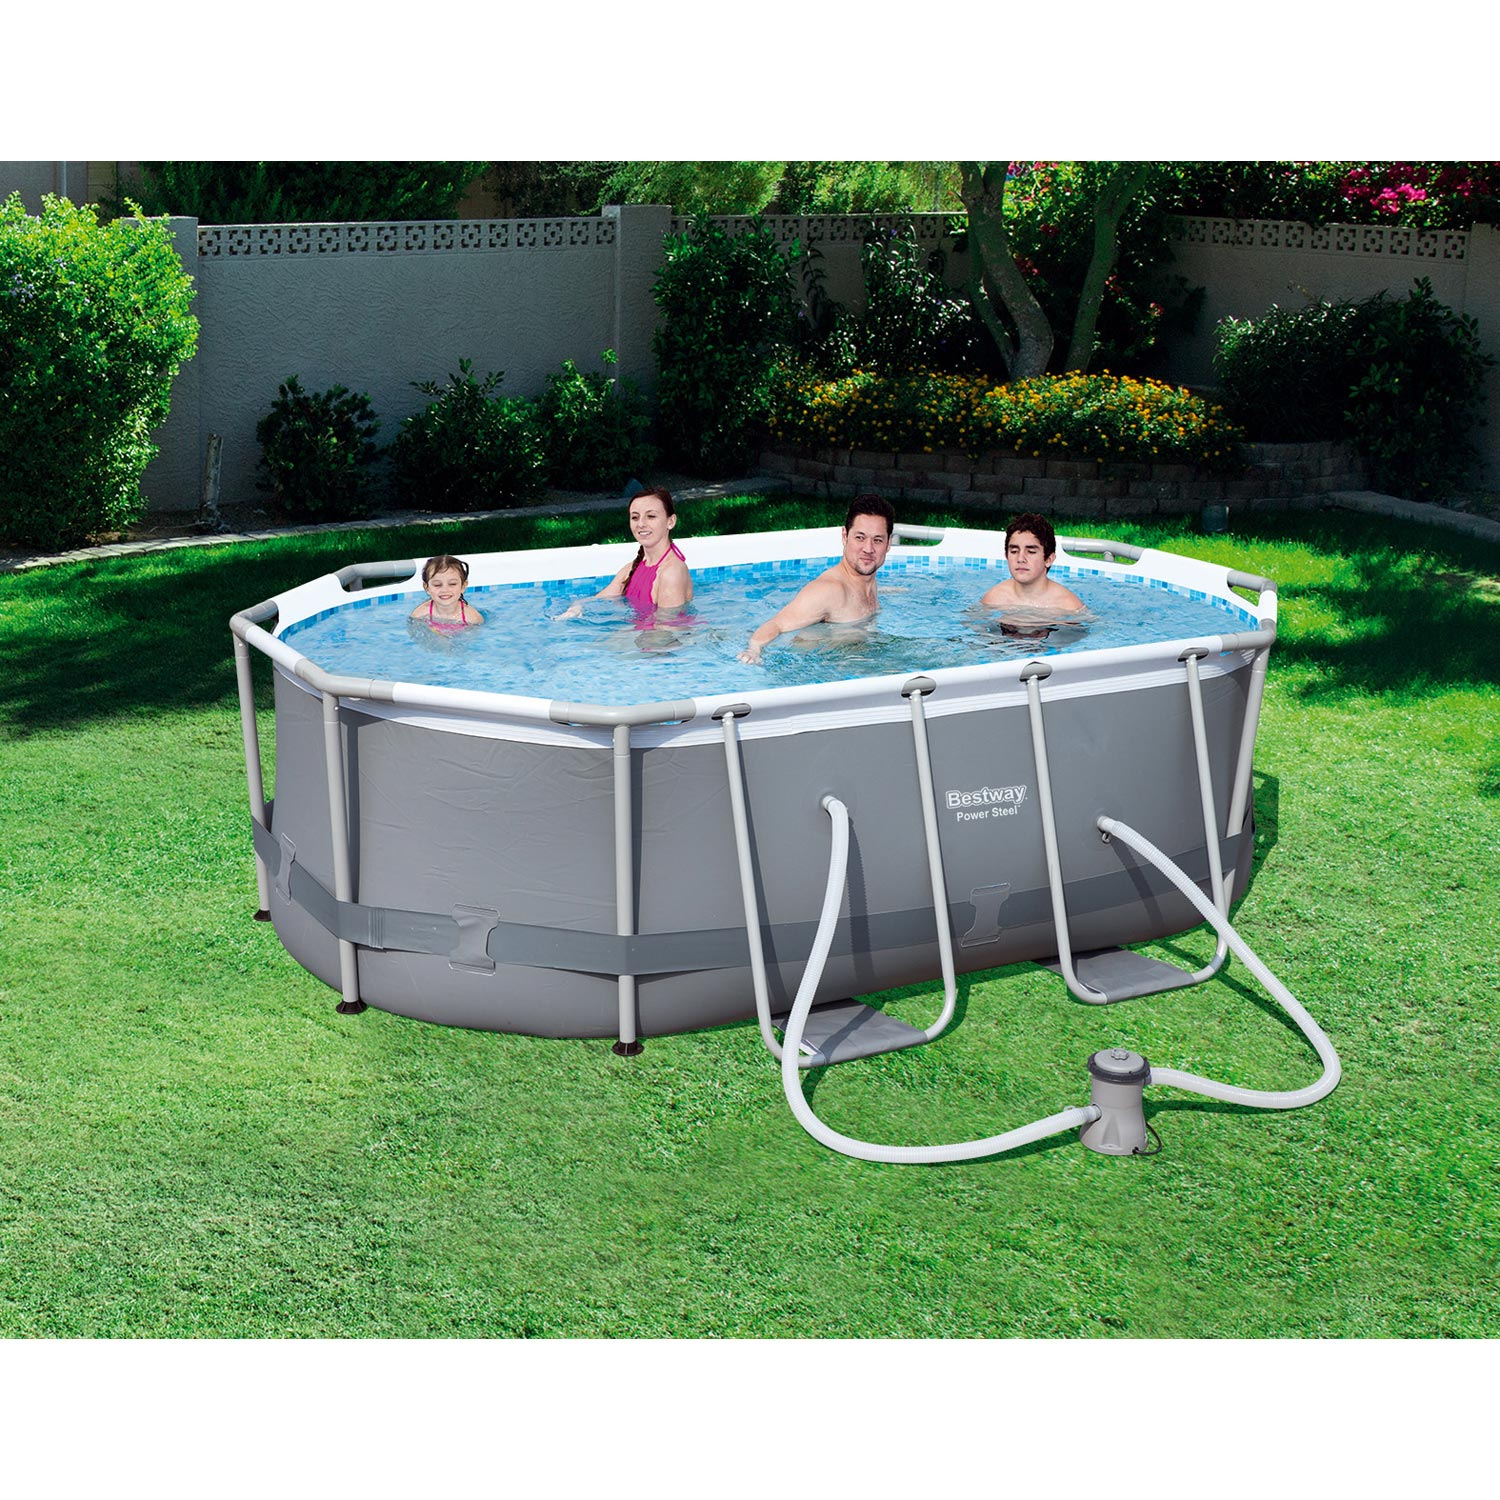 Piscine hors sol autoportante tubulaire bestway l 3 x l 2 for Piscine tubulaire bestway